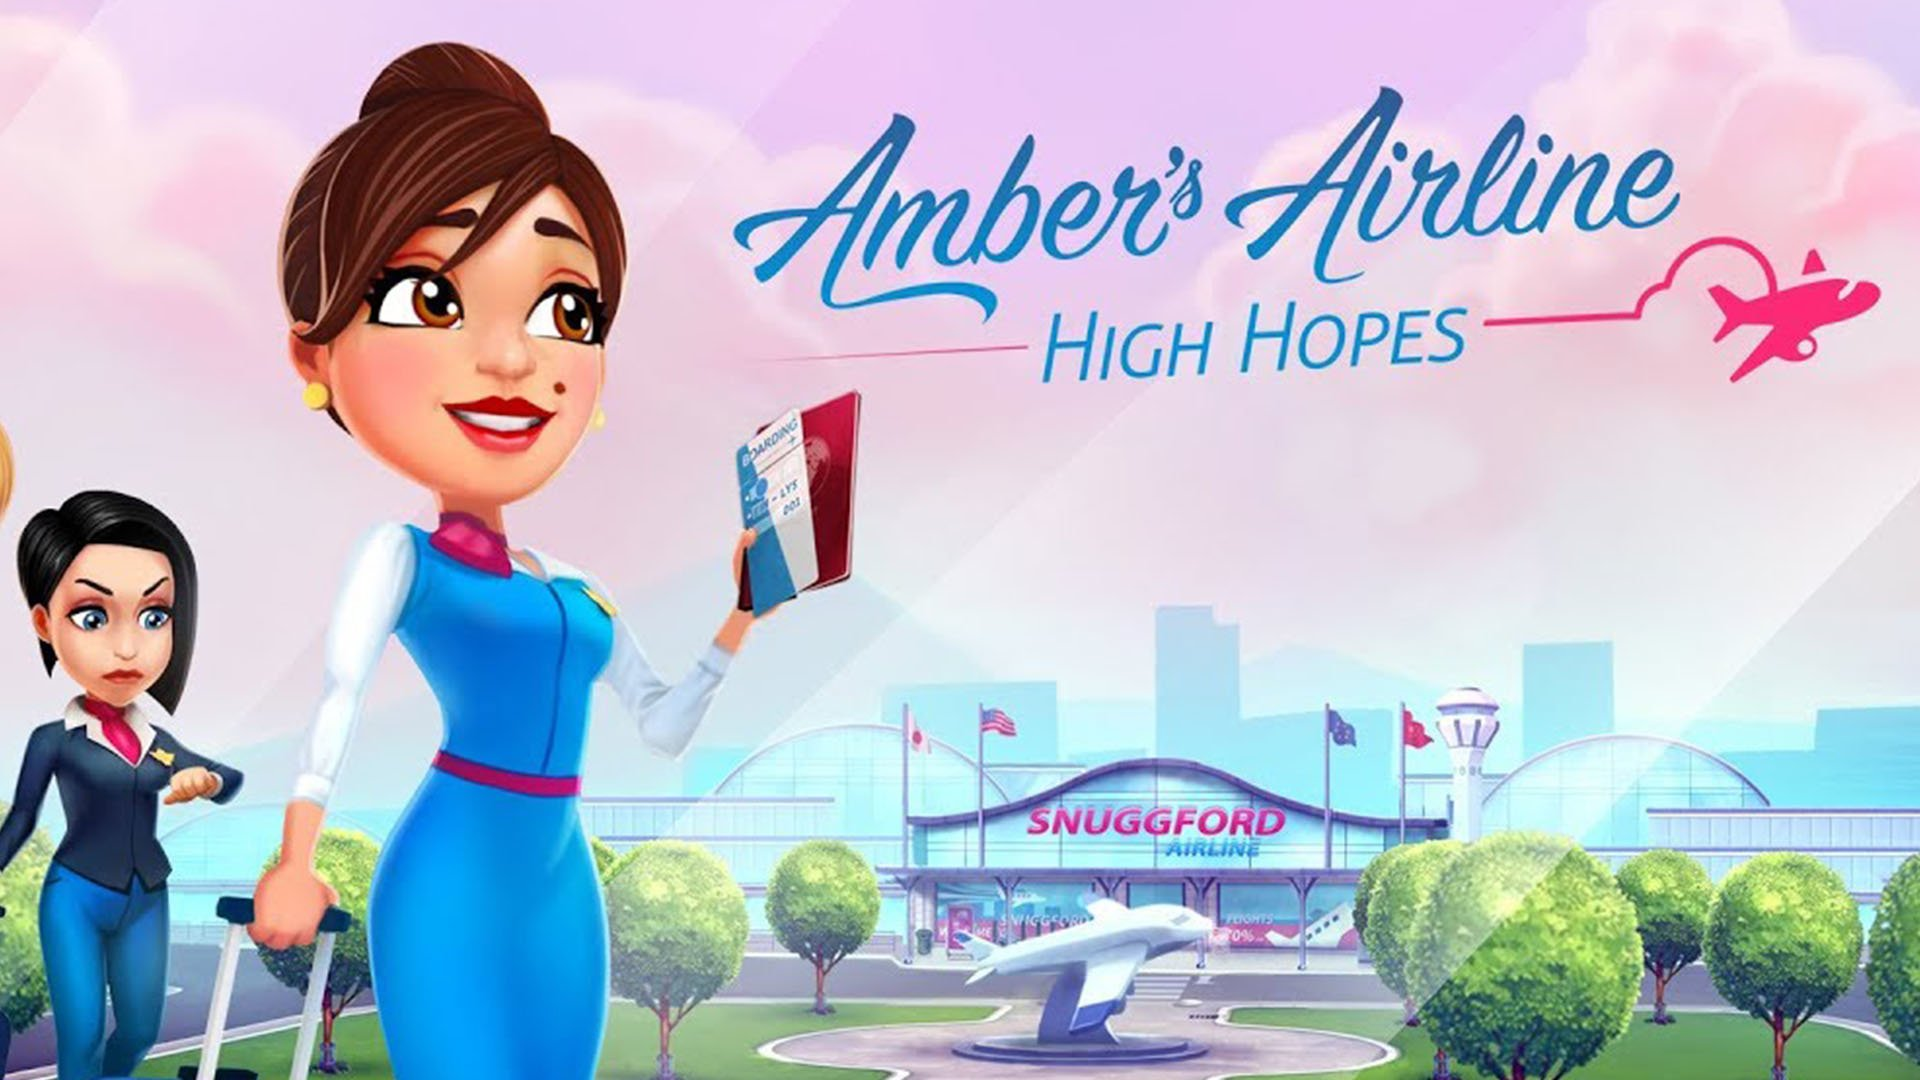 Amber's Airline – High Hopes (PC) Review